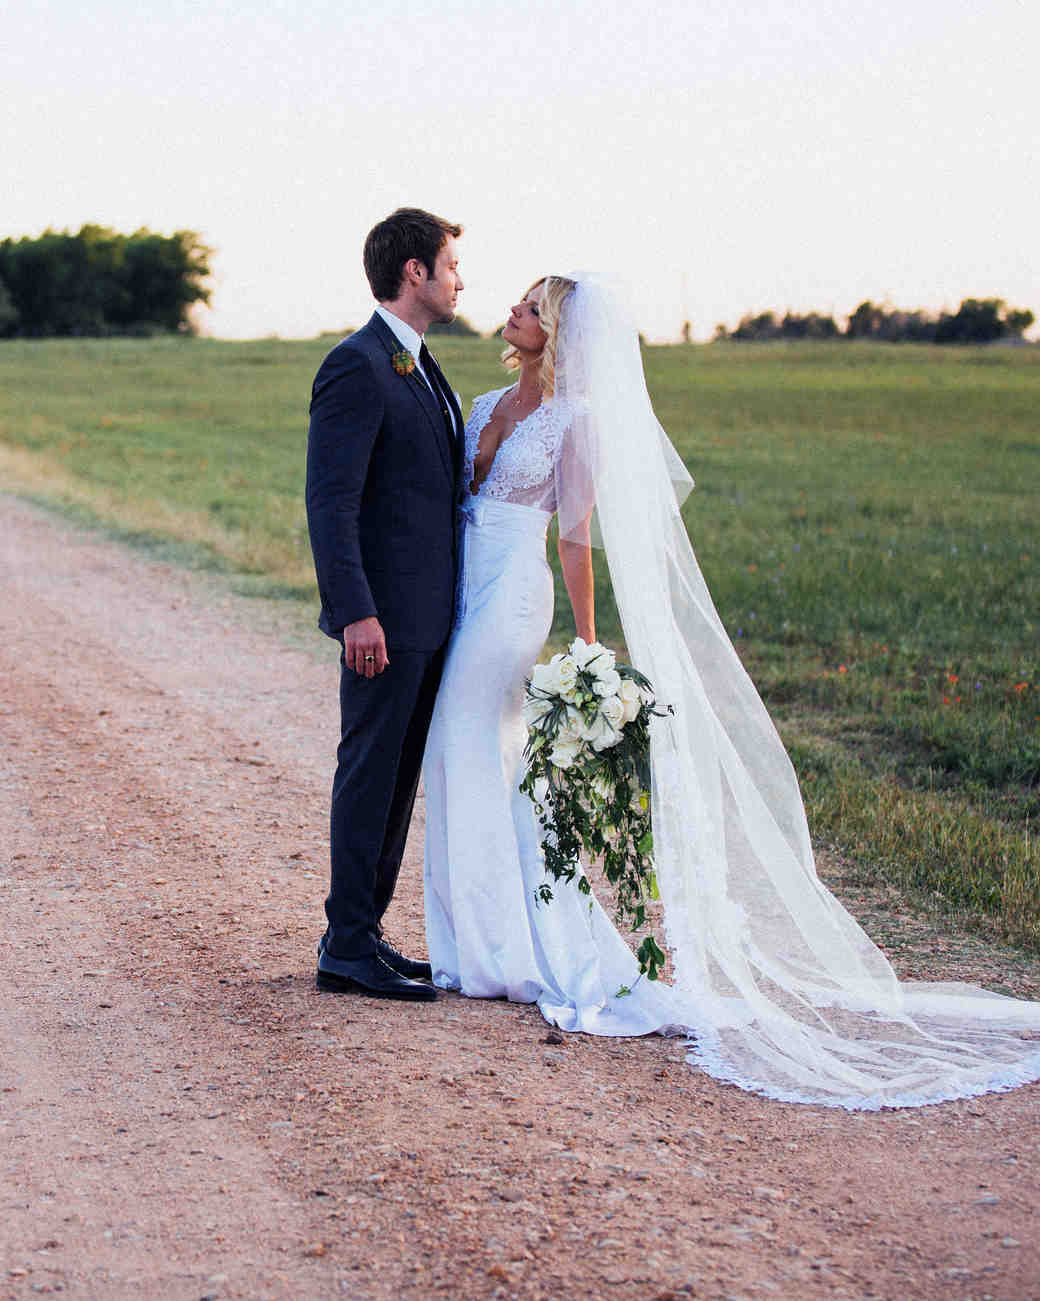 texas prairie rachel ashwell shabby chic wedding leah michael laura ashley wedding dresses The Fashions